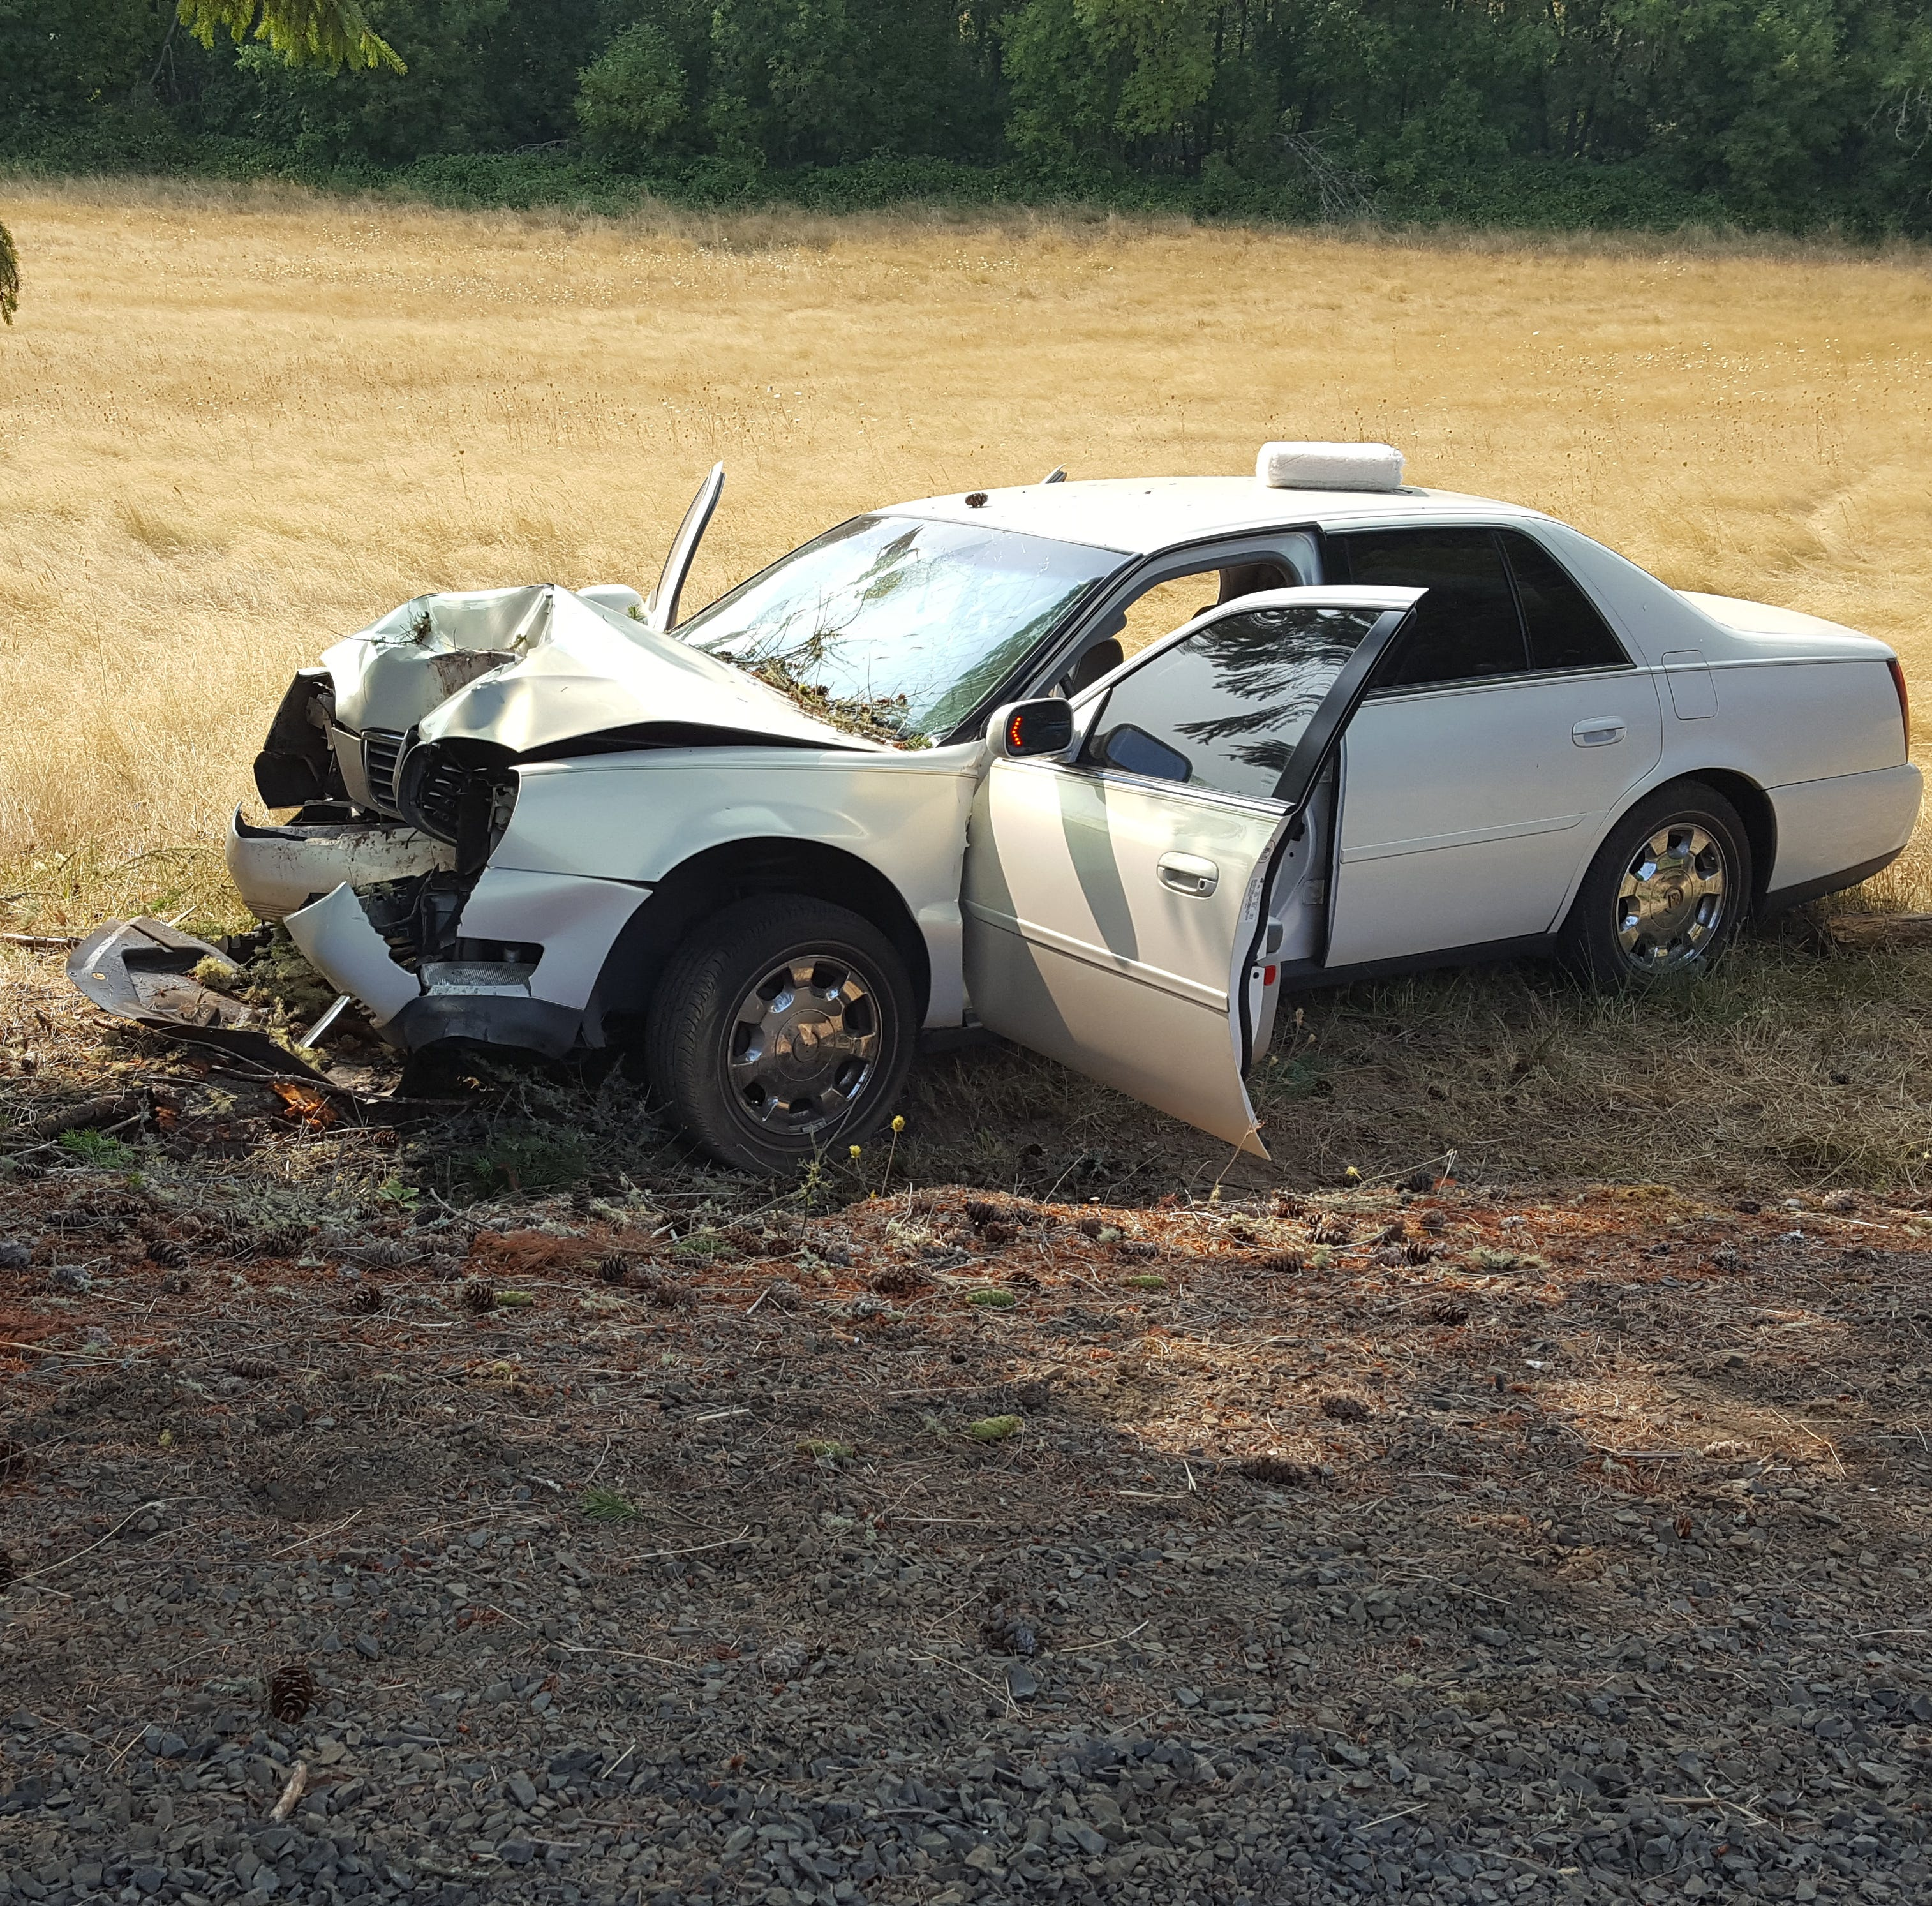 85-year-old Salem woman killed after car slams into tree in Lane County